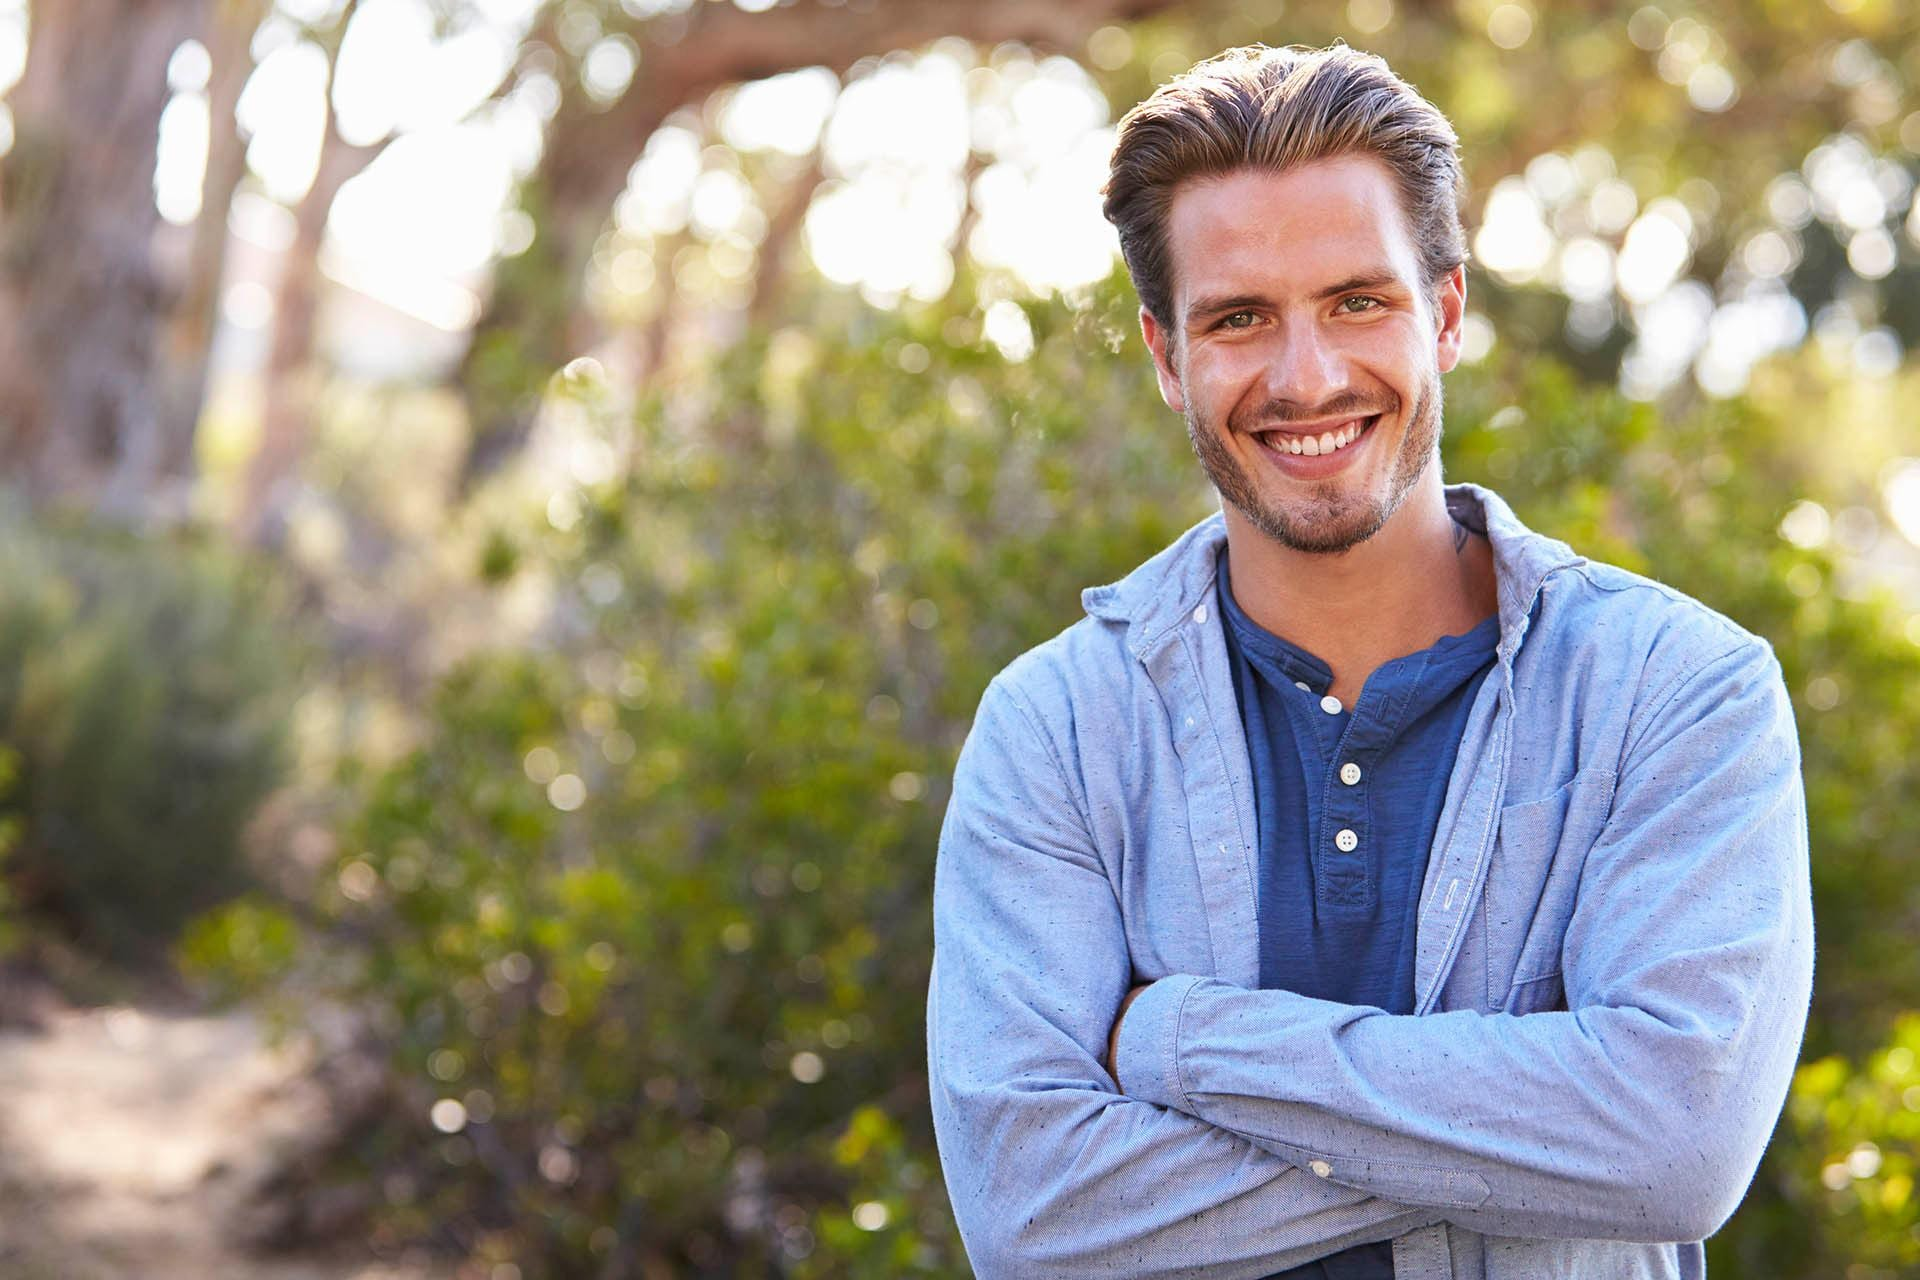 Man outdoors shows off his smile from the best dentist Rancho Cordova, CA